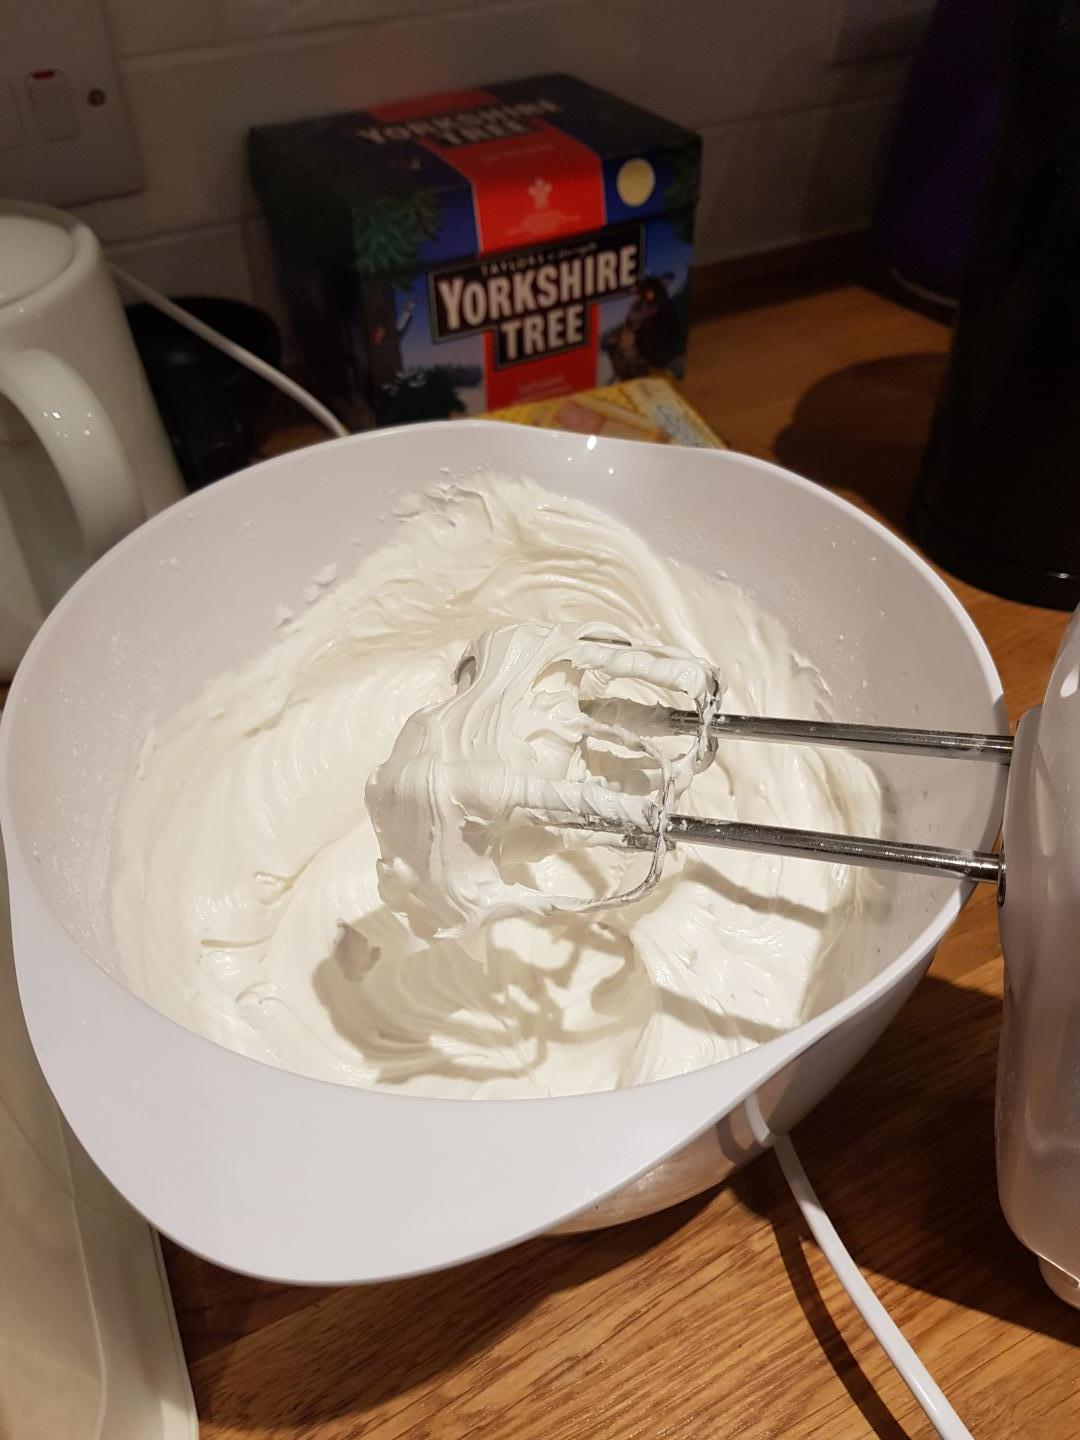 6. Whisk until stiff peaks start to to form and the icing appears glossy.